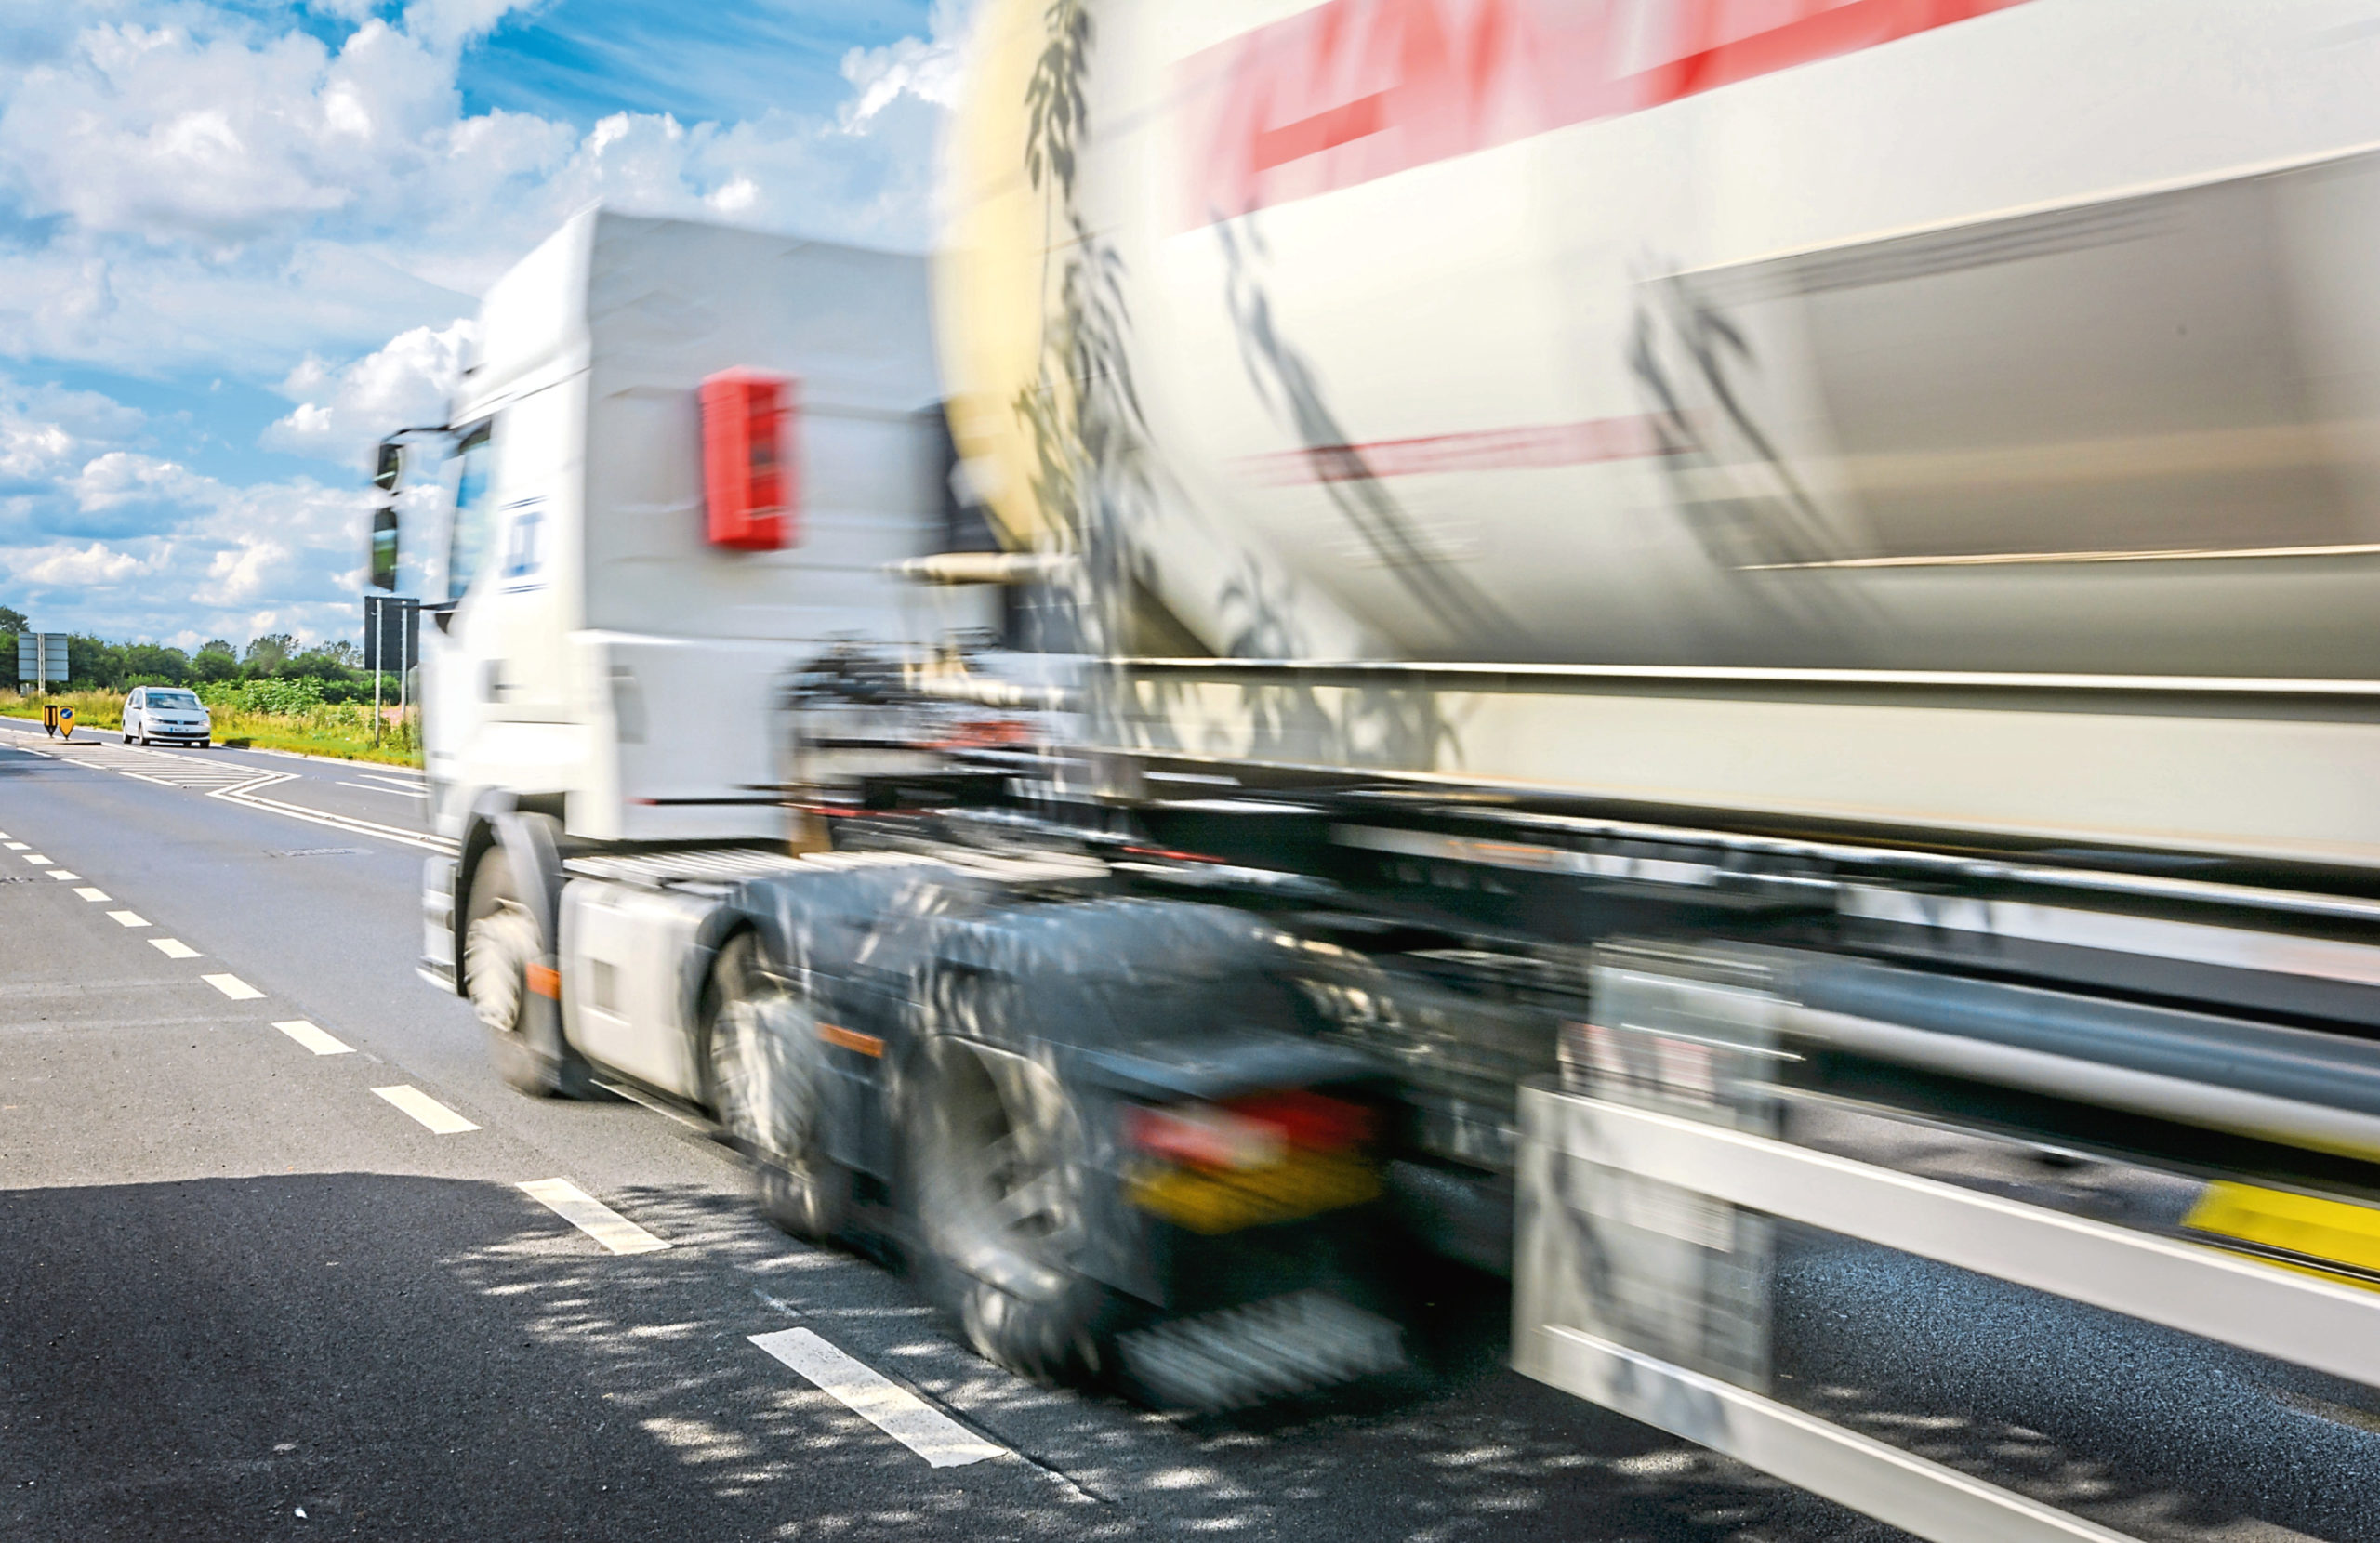 HGVs are now banned